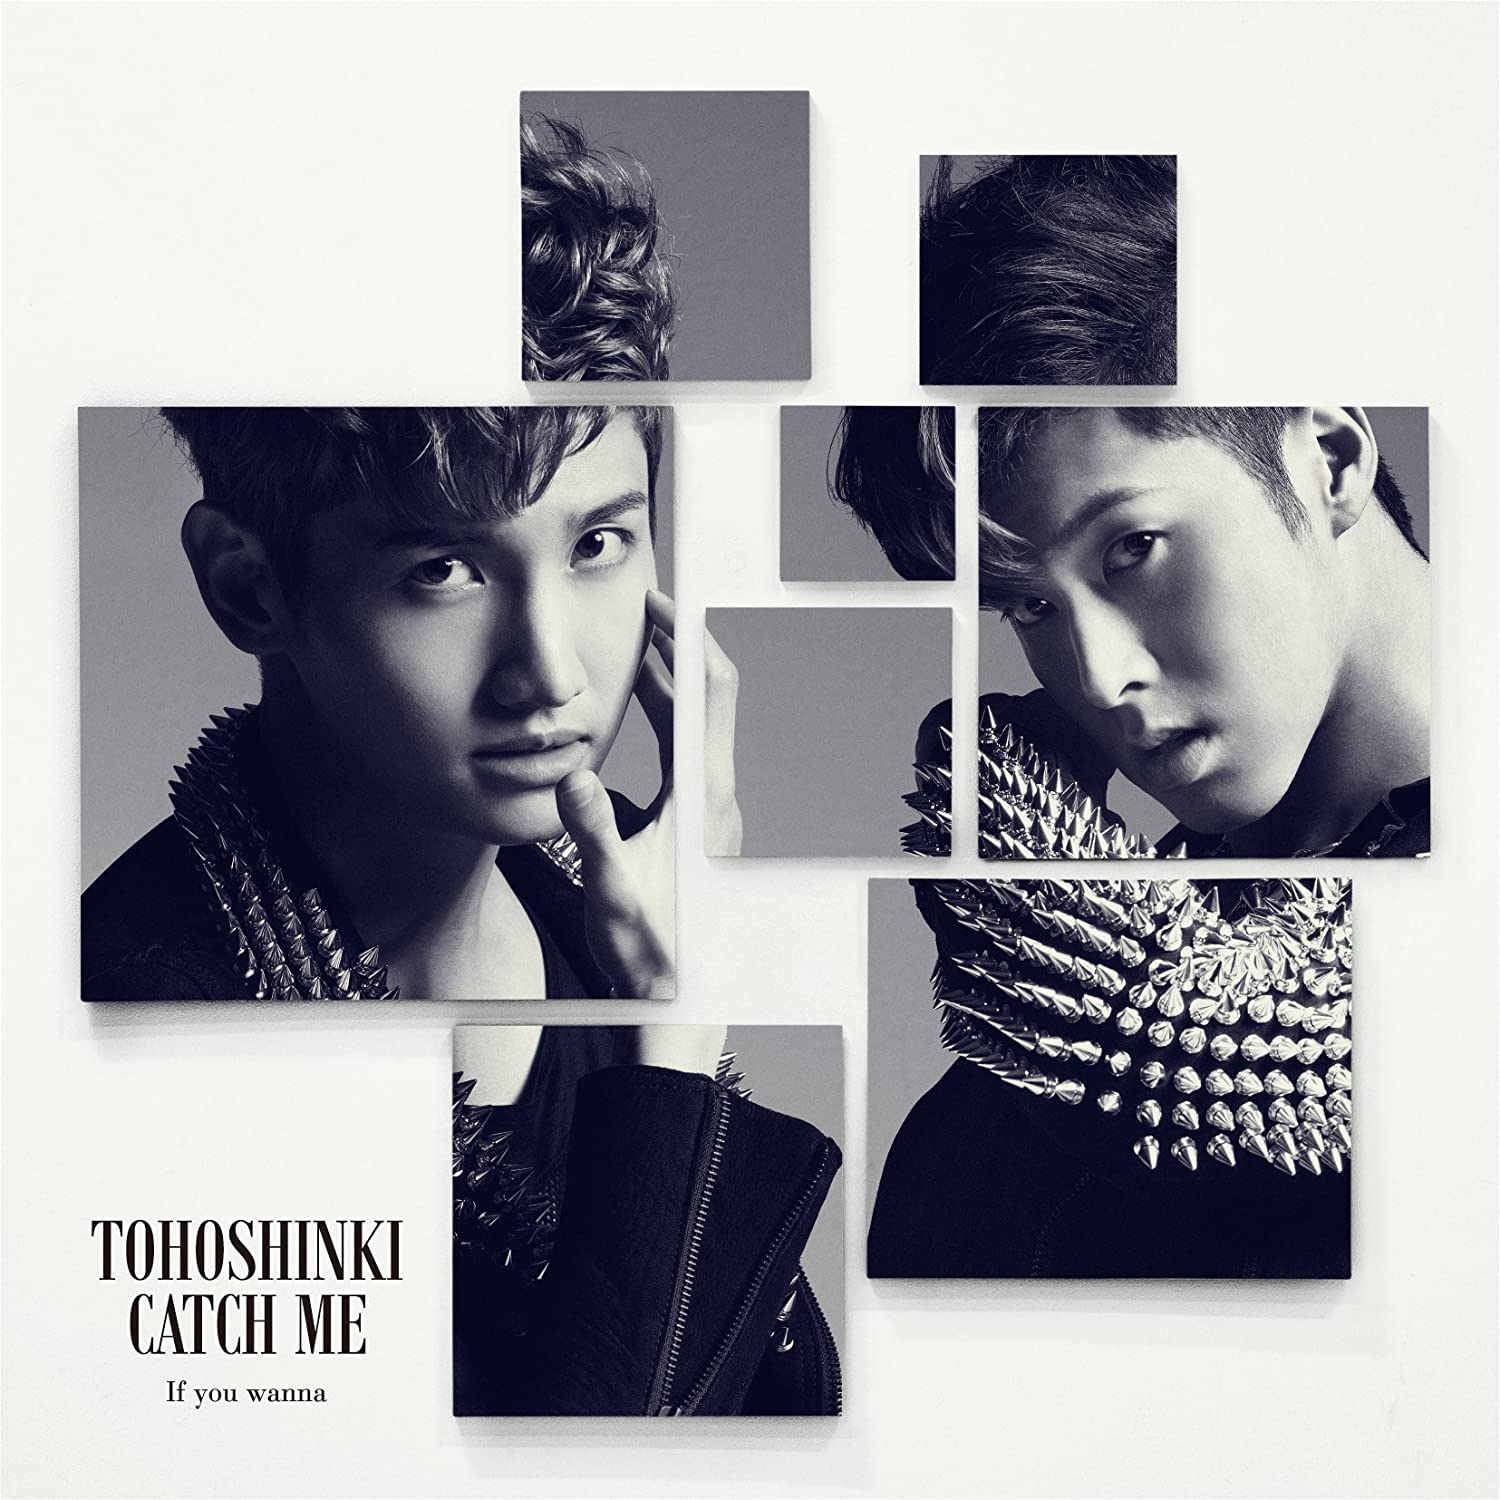 Tohoshinki 東方神起 – Catch Me – If you wanna-